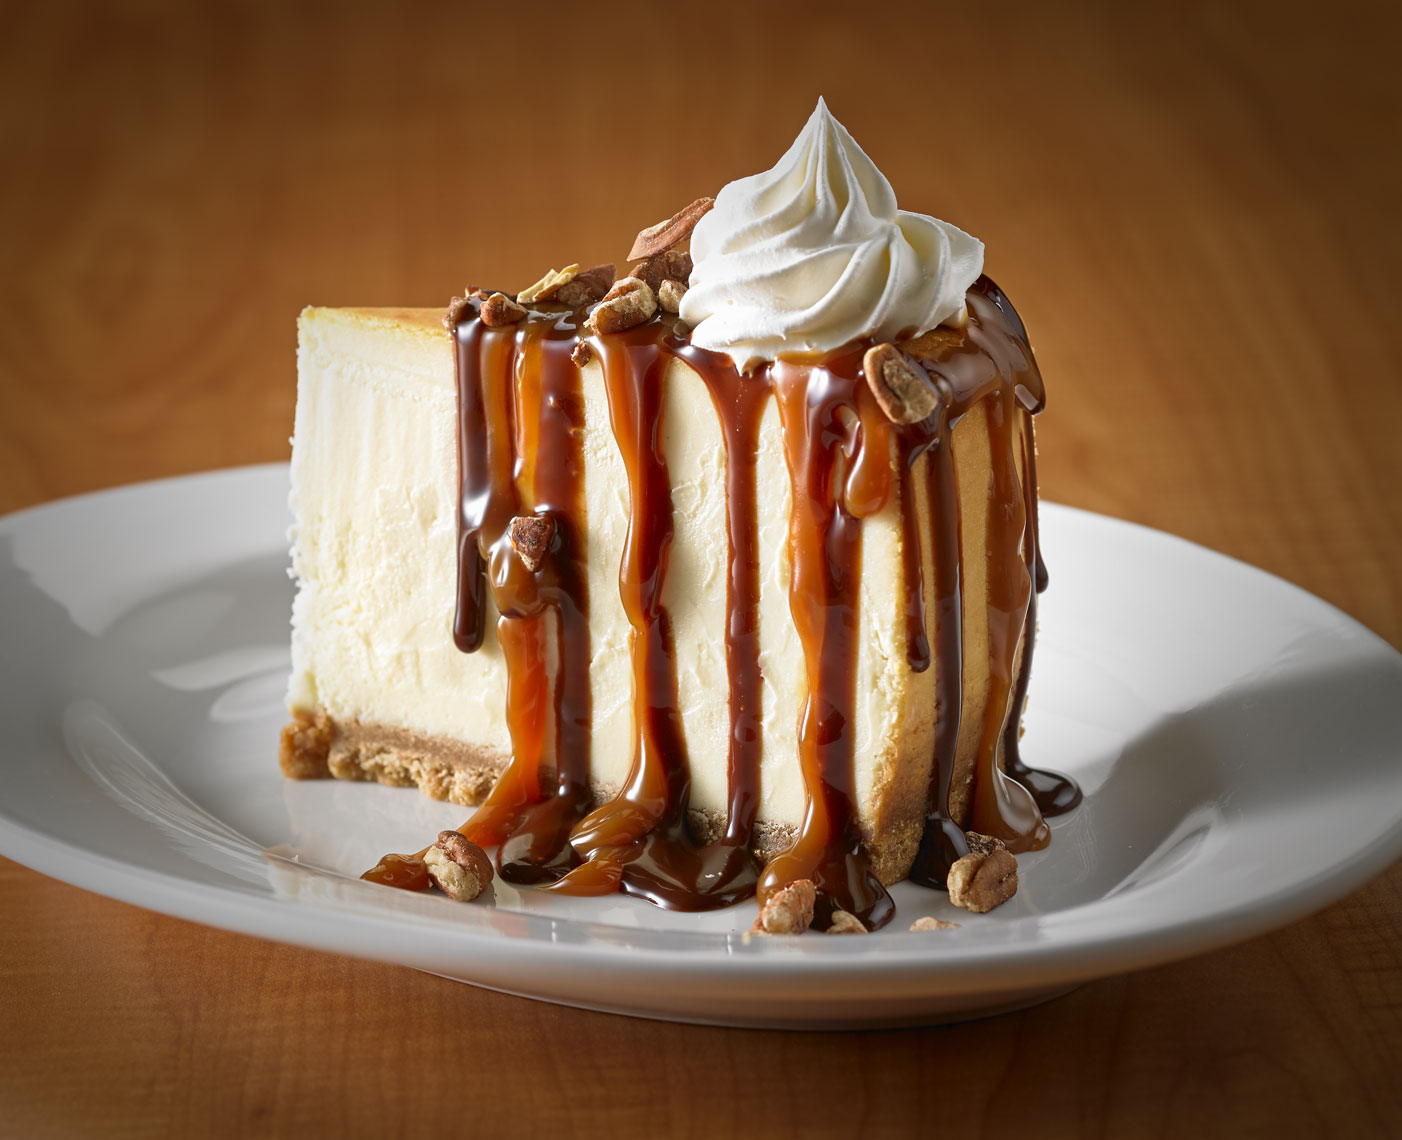 Cheesecake/caramel and nuts drizzled/whipped cream